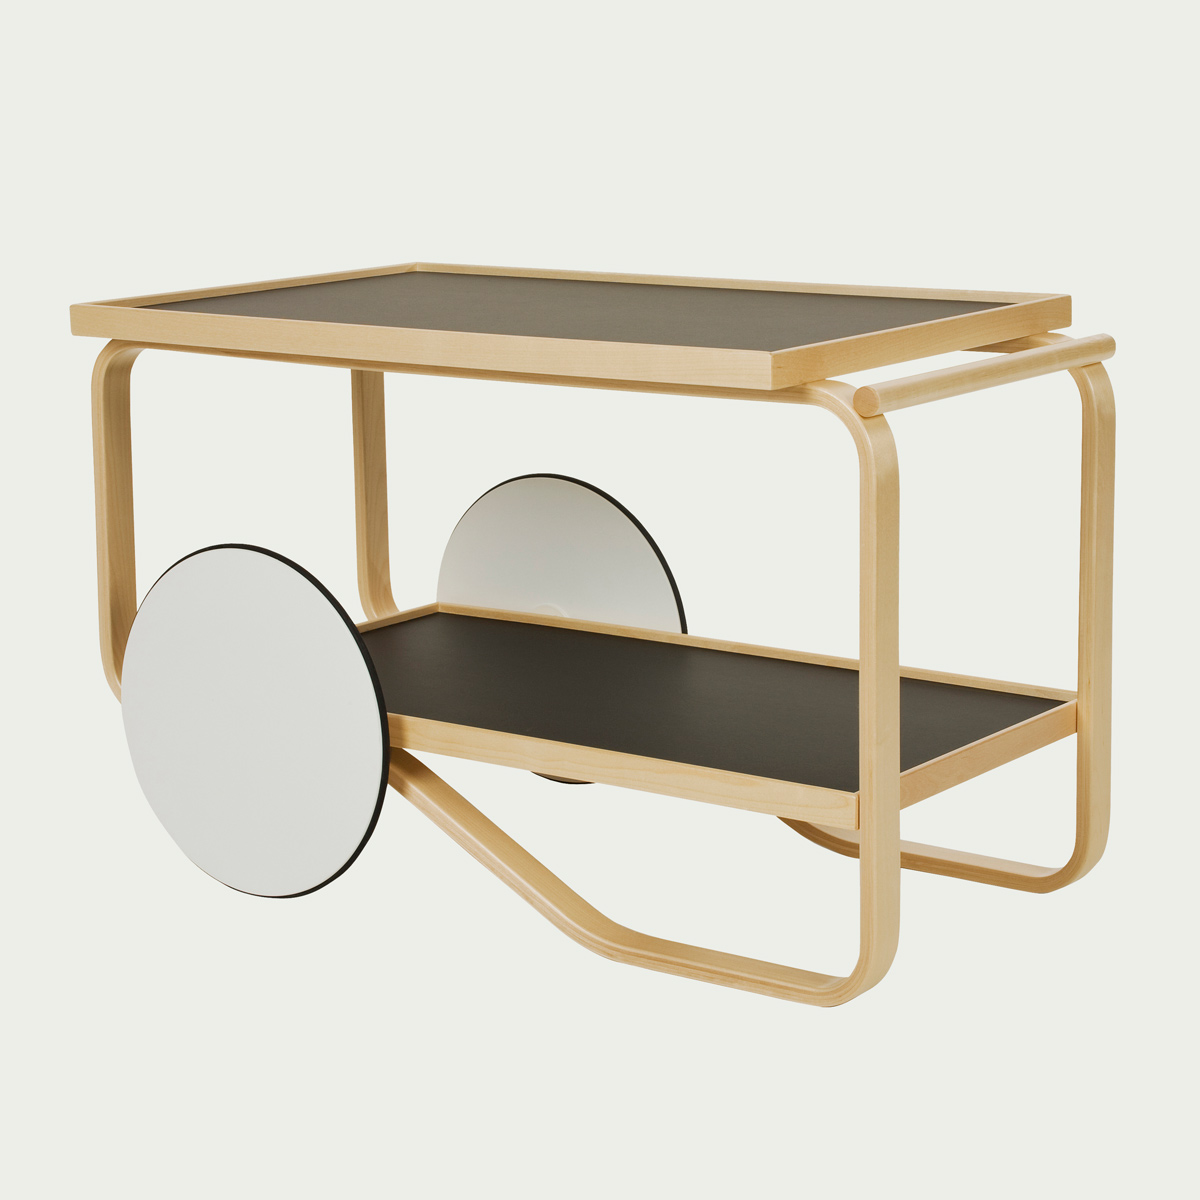 Alvar Aalto's Tea Trolley 901, a design from 1936—and still manufactured and available. Image:  www.Aalto.com